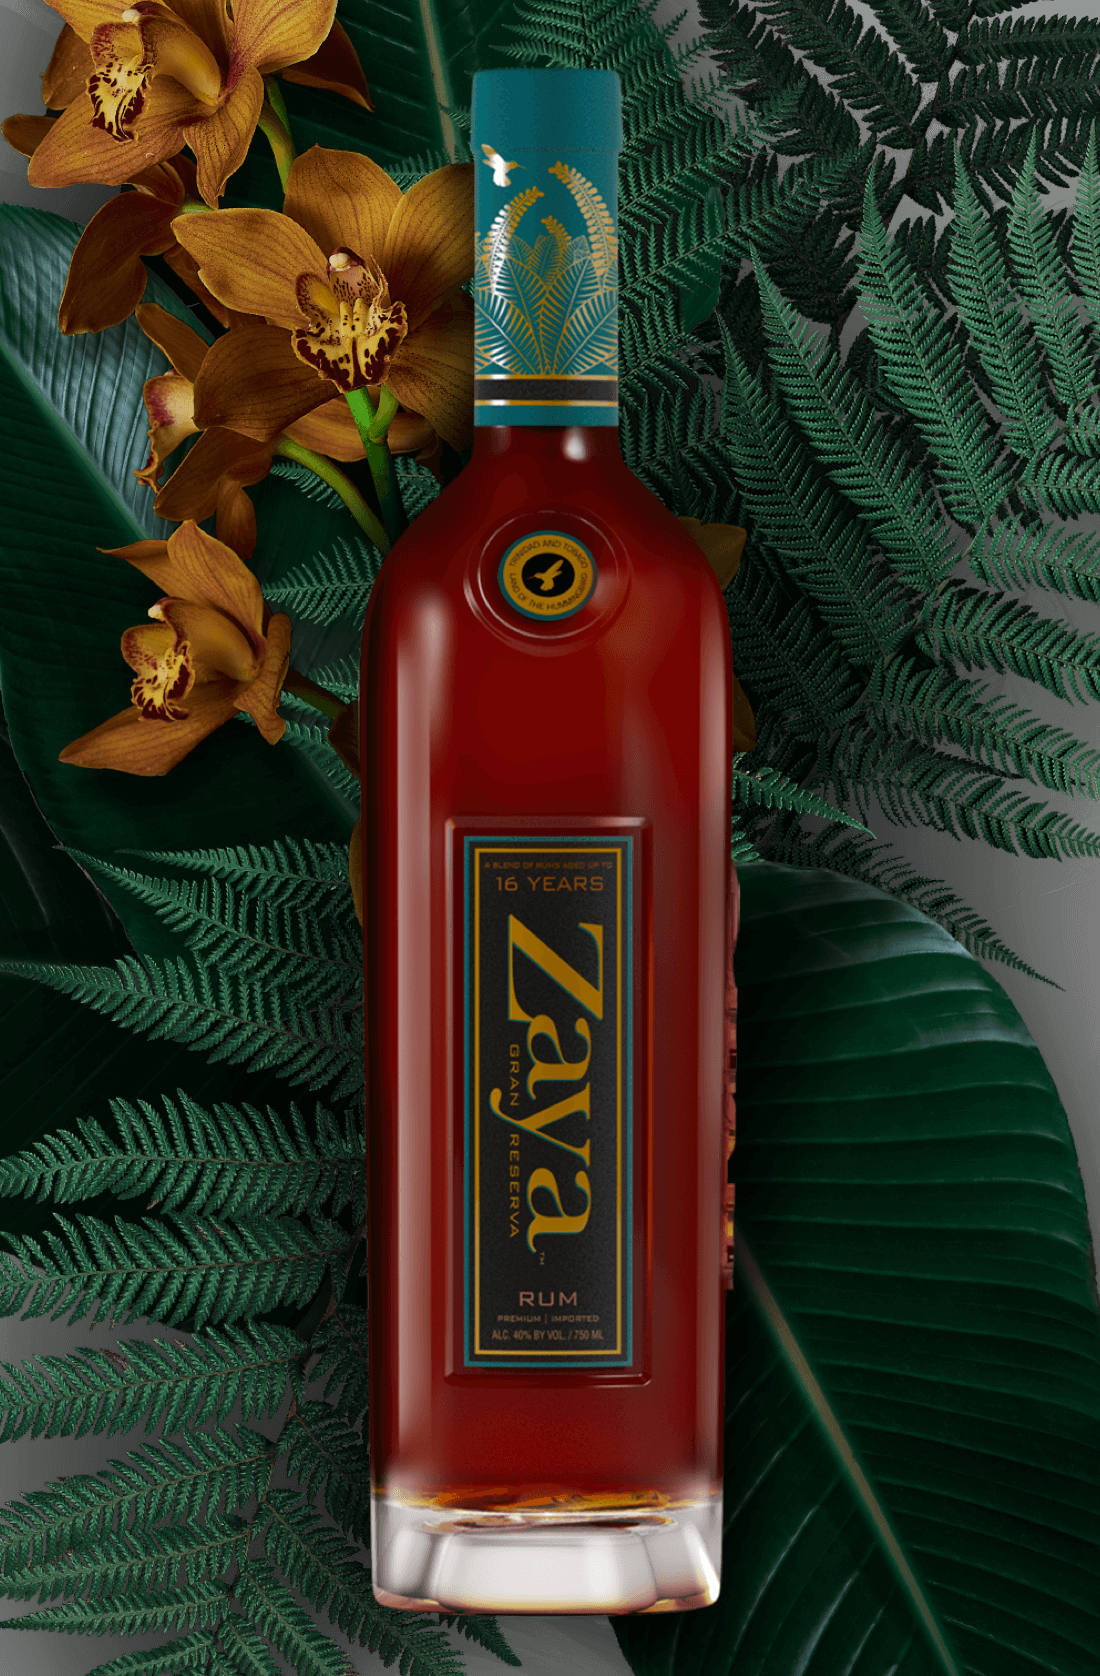 zaya rum bottle with orchids and tropical leaves